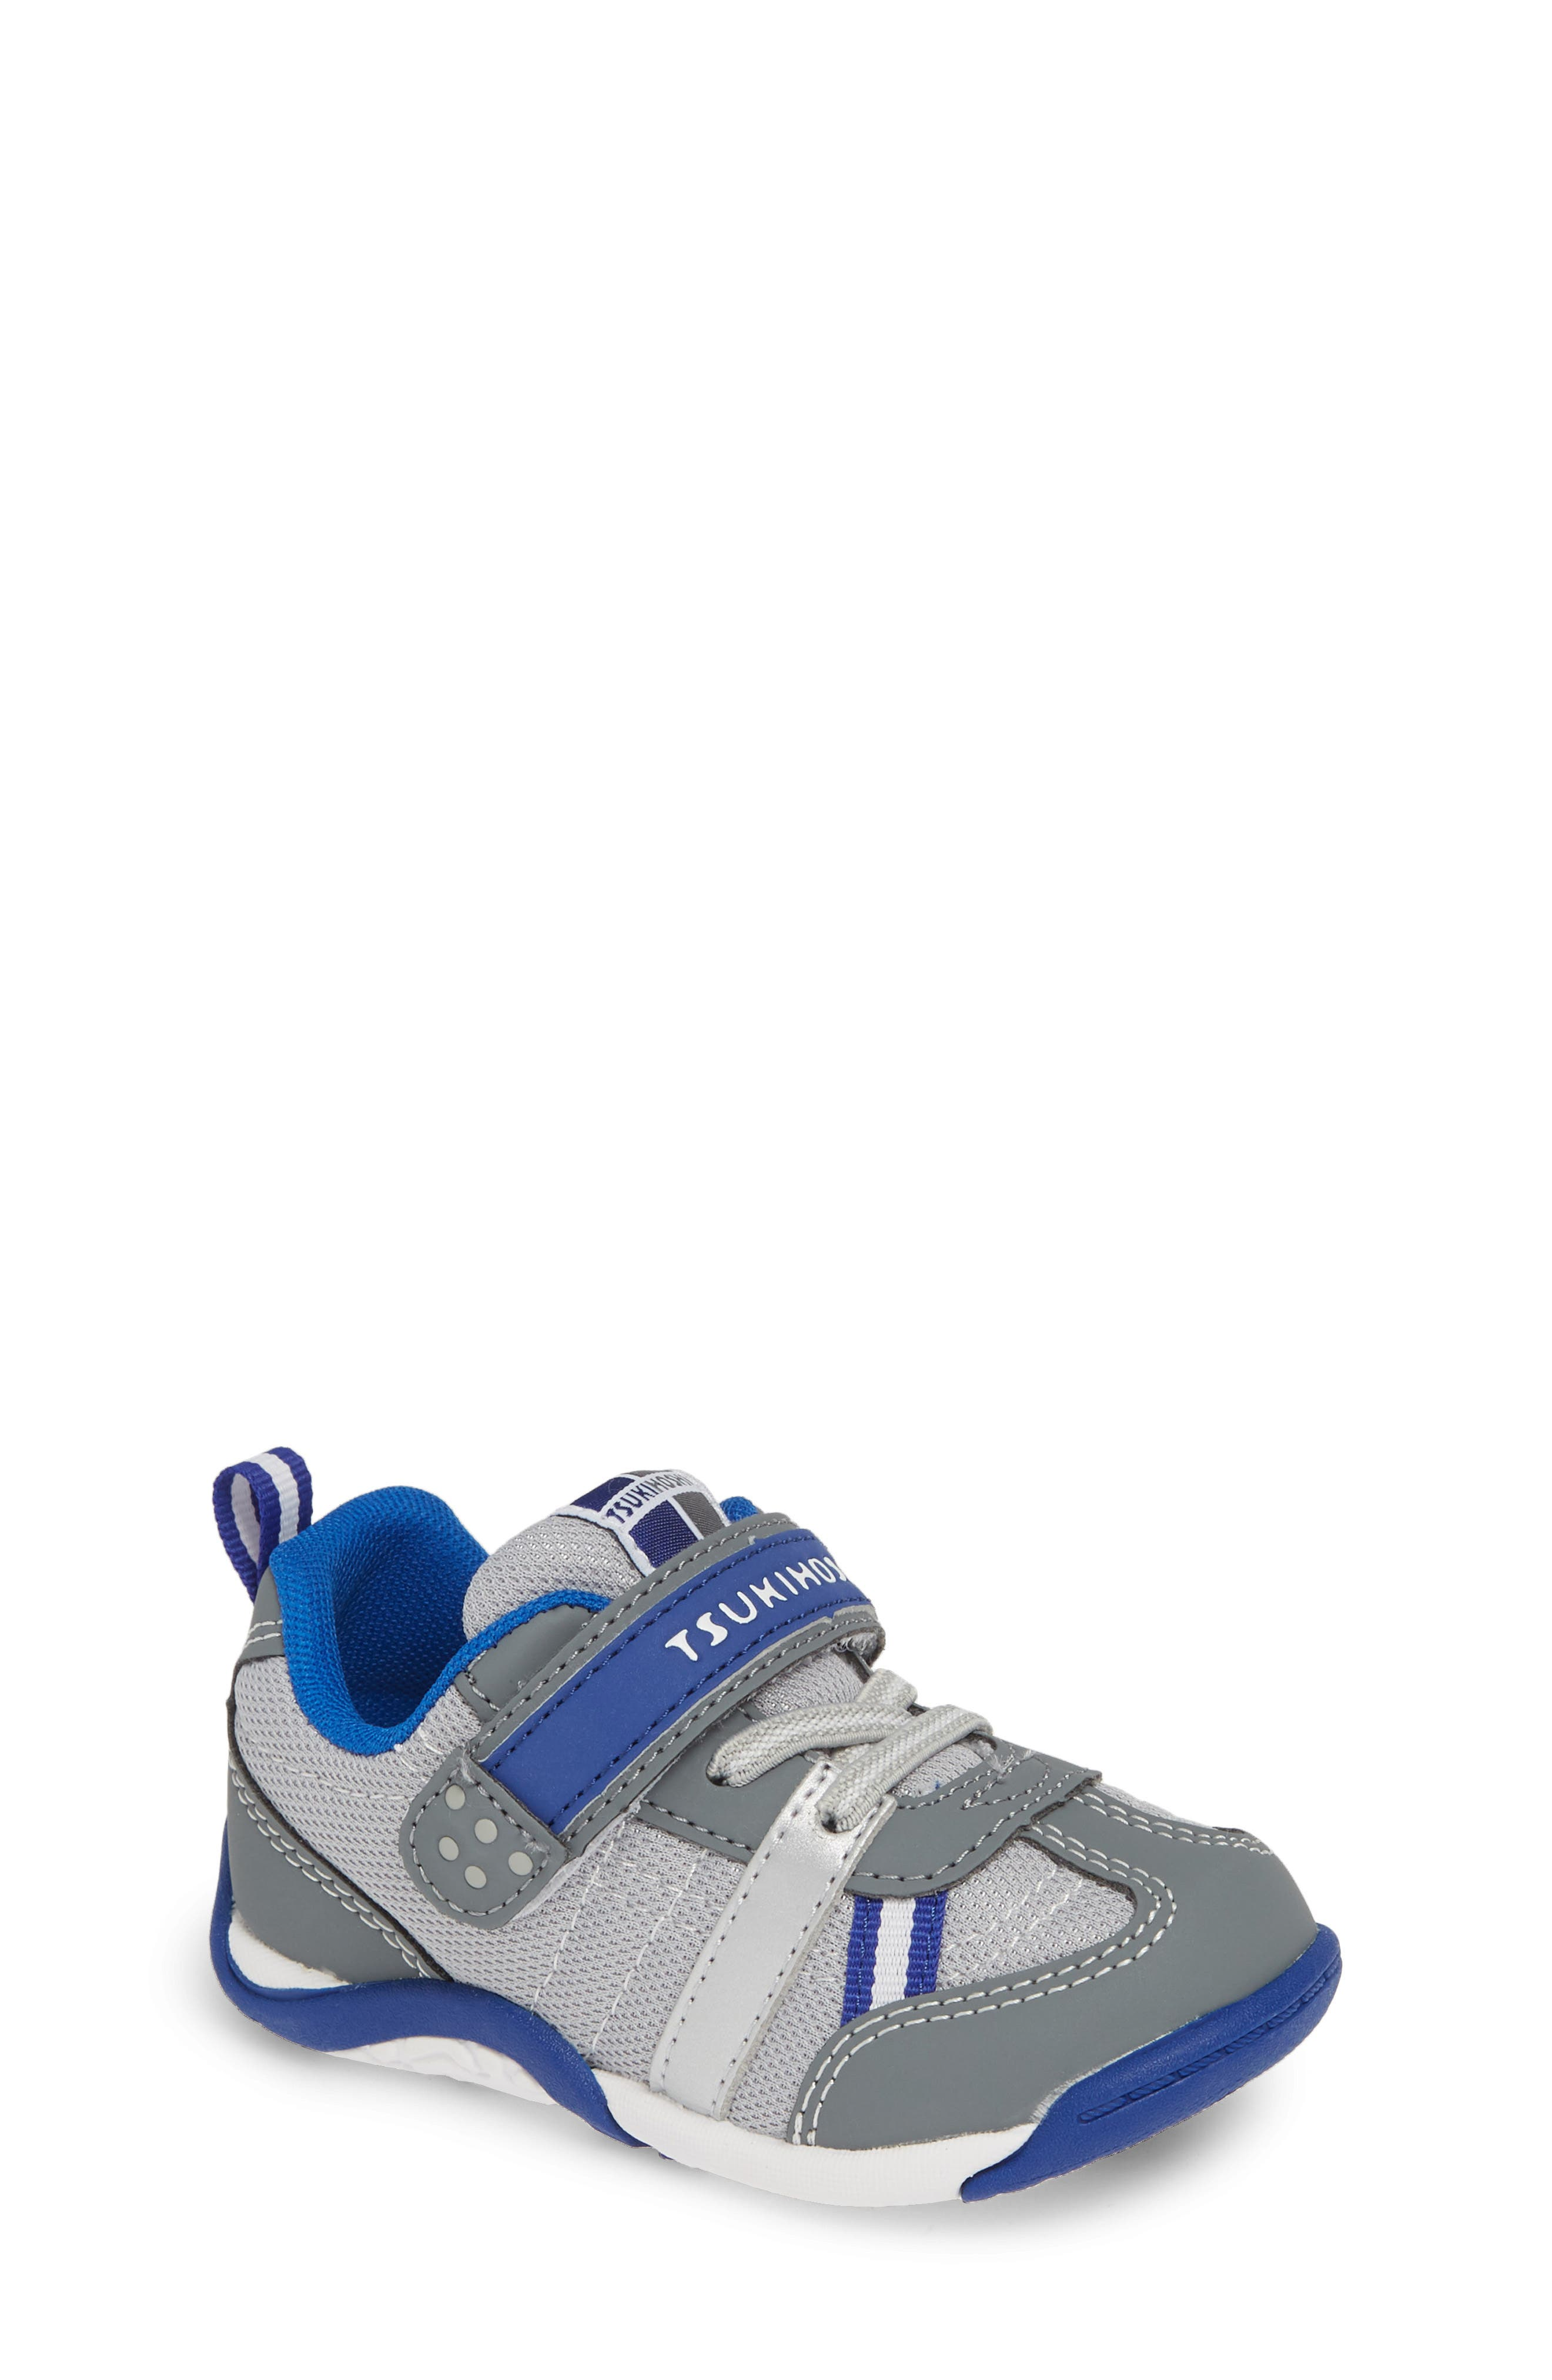 U-MAC Boys and Girls Sneakers No Tie Lace Breathable Mesh Lightweight Casual Shoes Little Kid//Big Kid